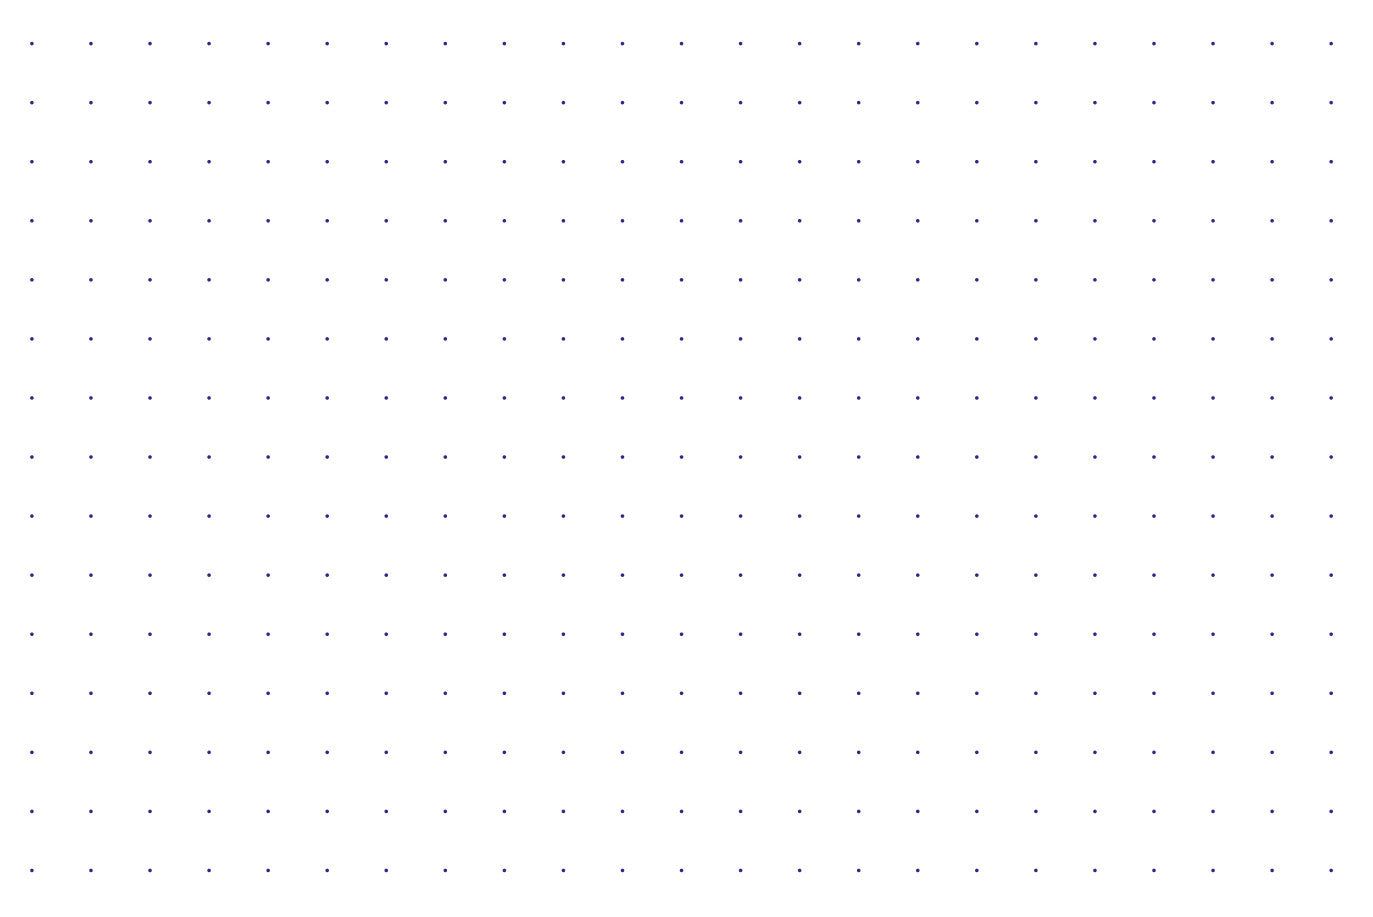 william hannah   5mm dotted grid paper a6 refill  100 pack